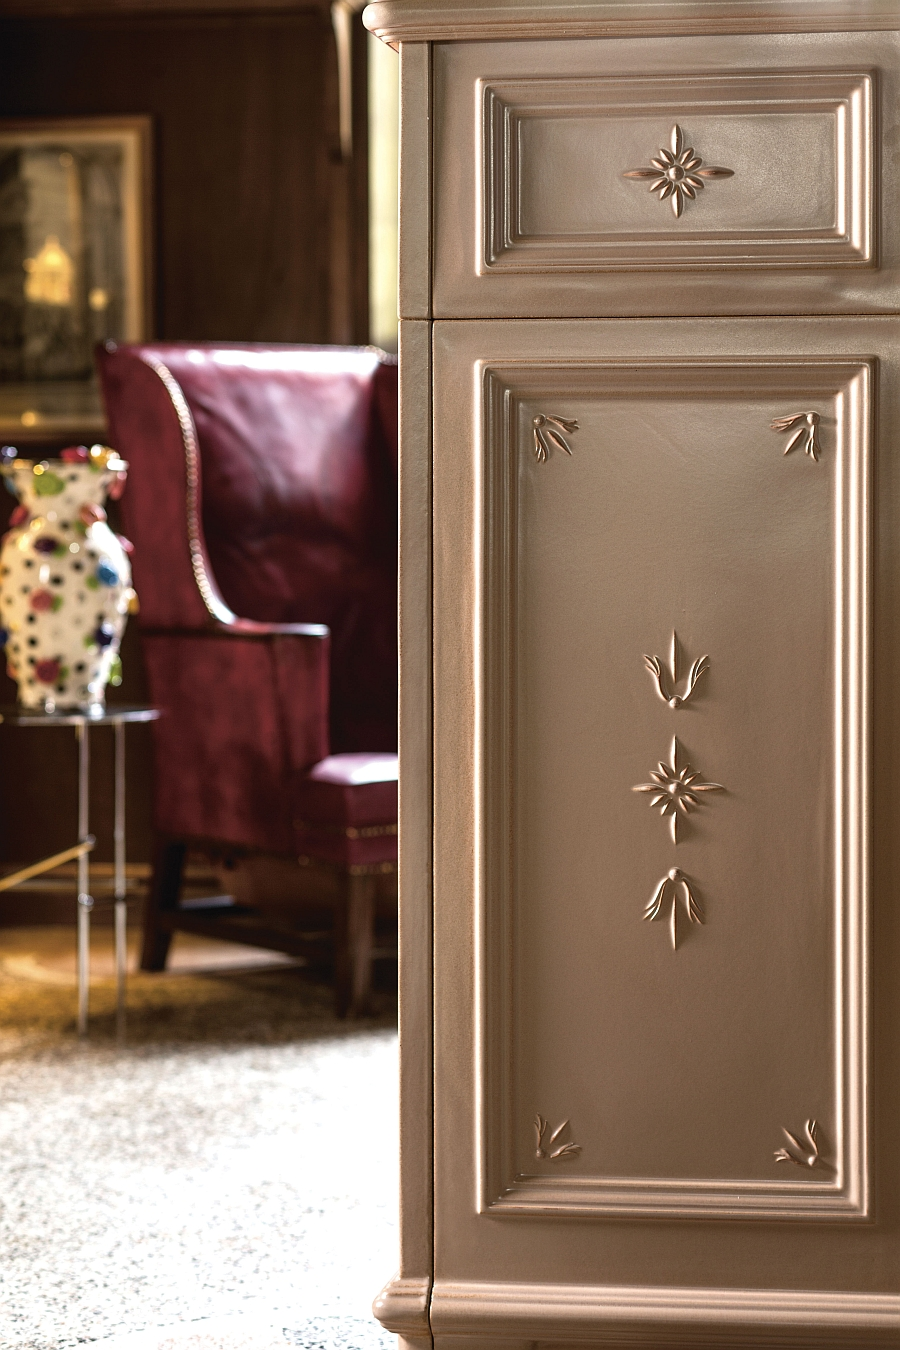 Intricate detail adds to the traditional charm of the wood-burning collection